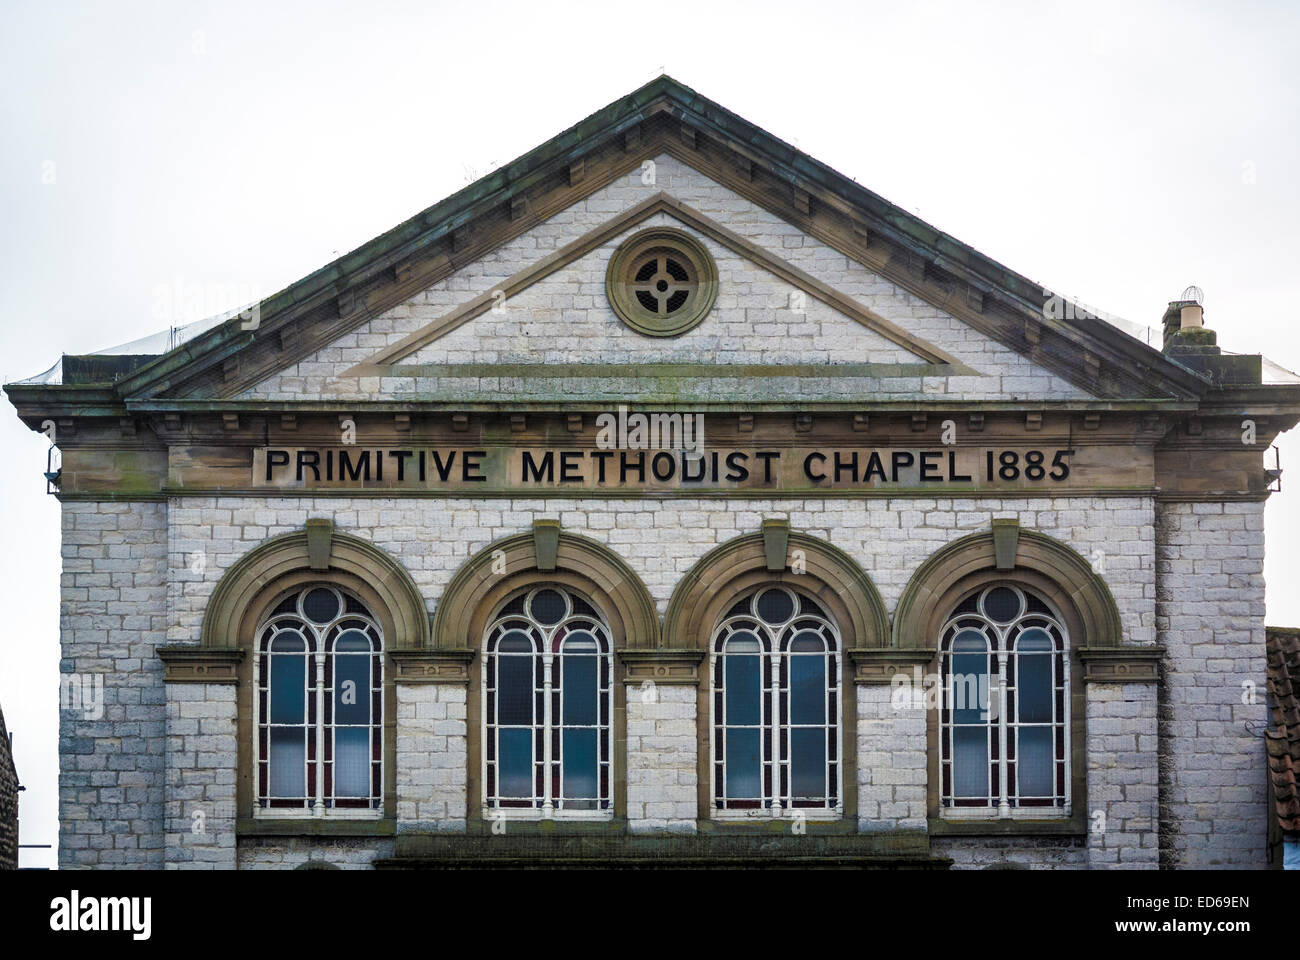 Primitive Methodist Chapel building and sign, Pickering, North Yorkshire, UK. - Stock Image